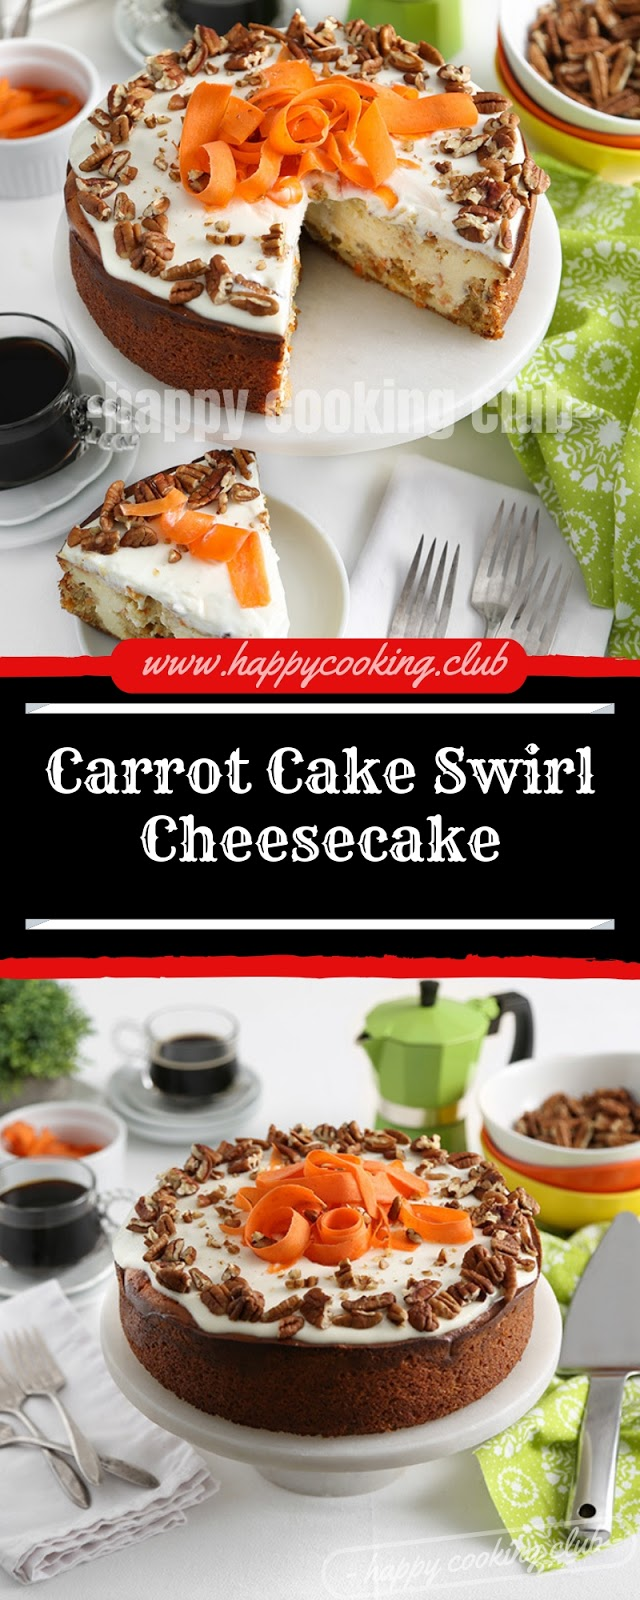 Carrot Cake Swirl Cheesecake